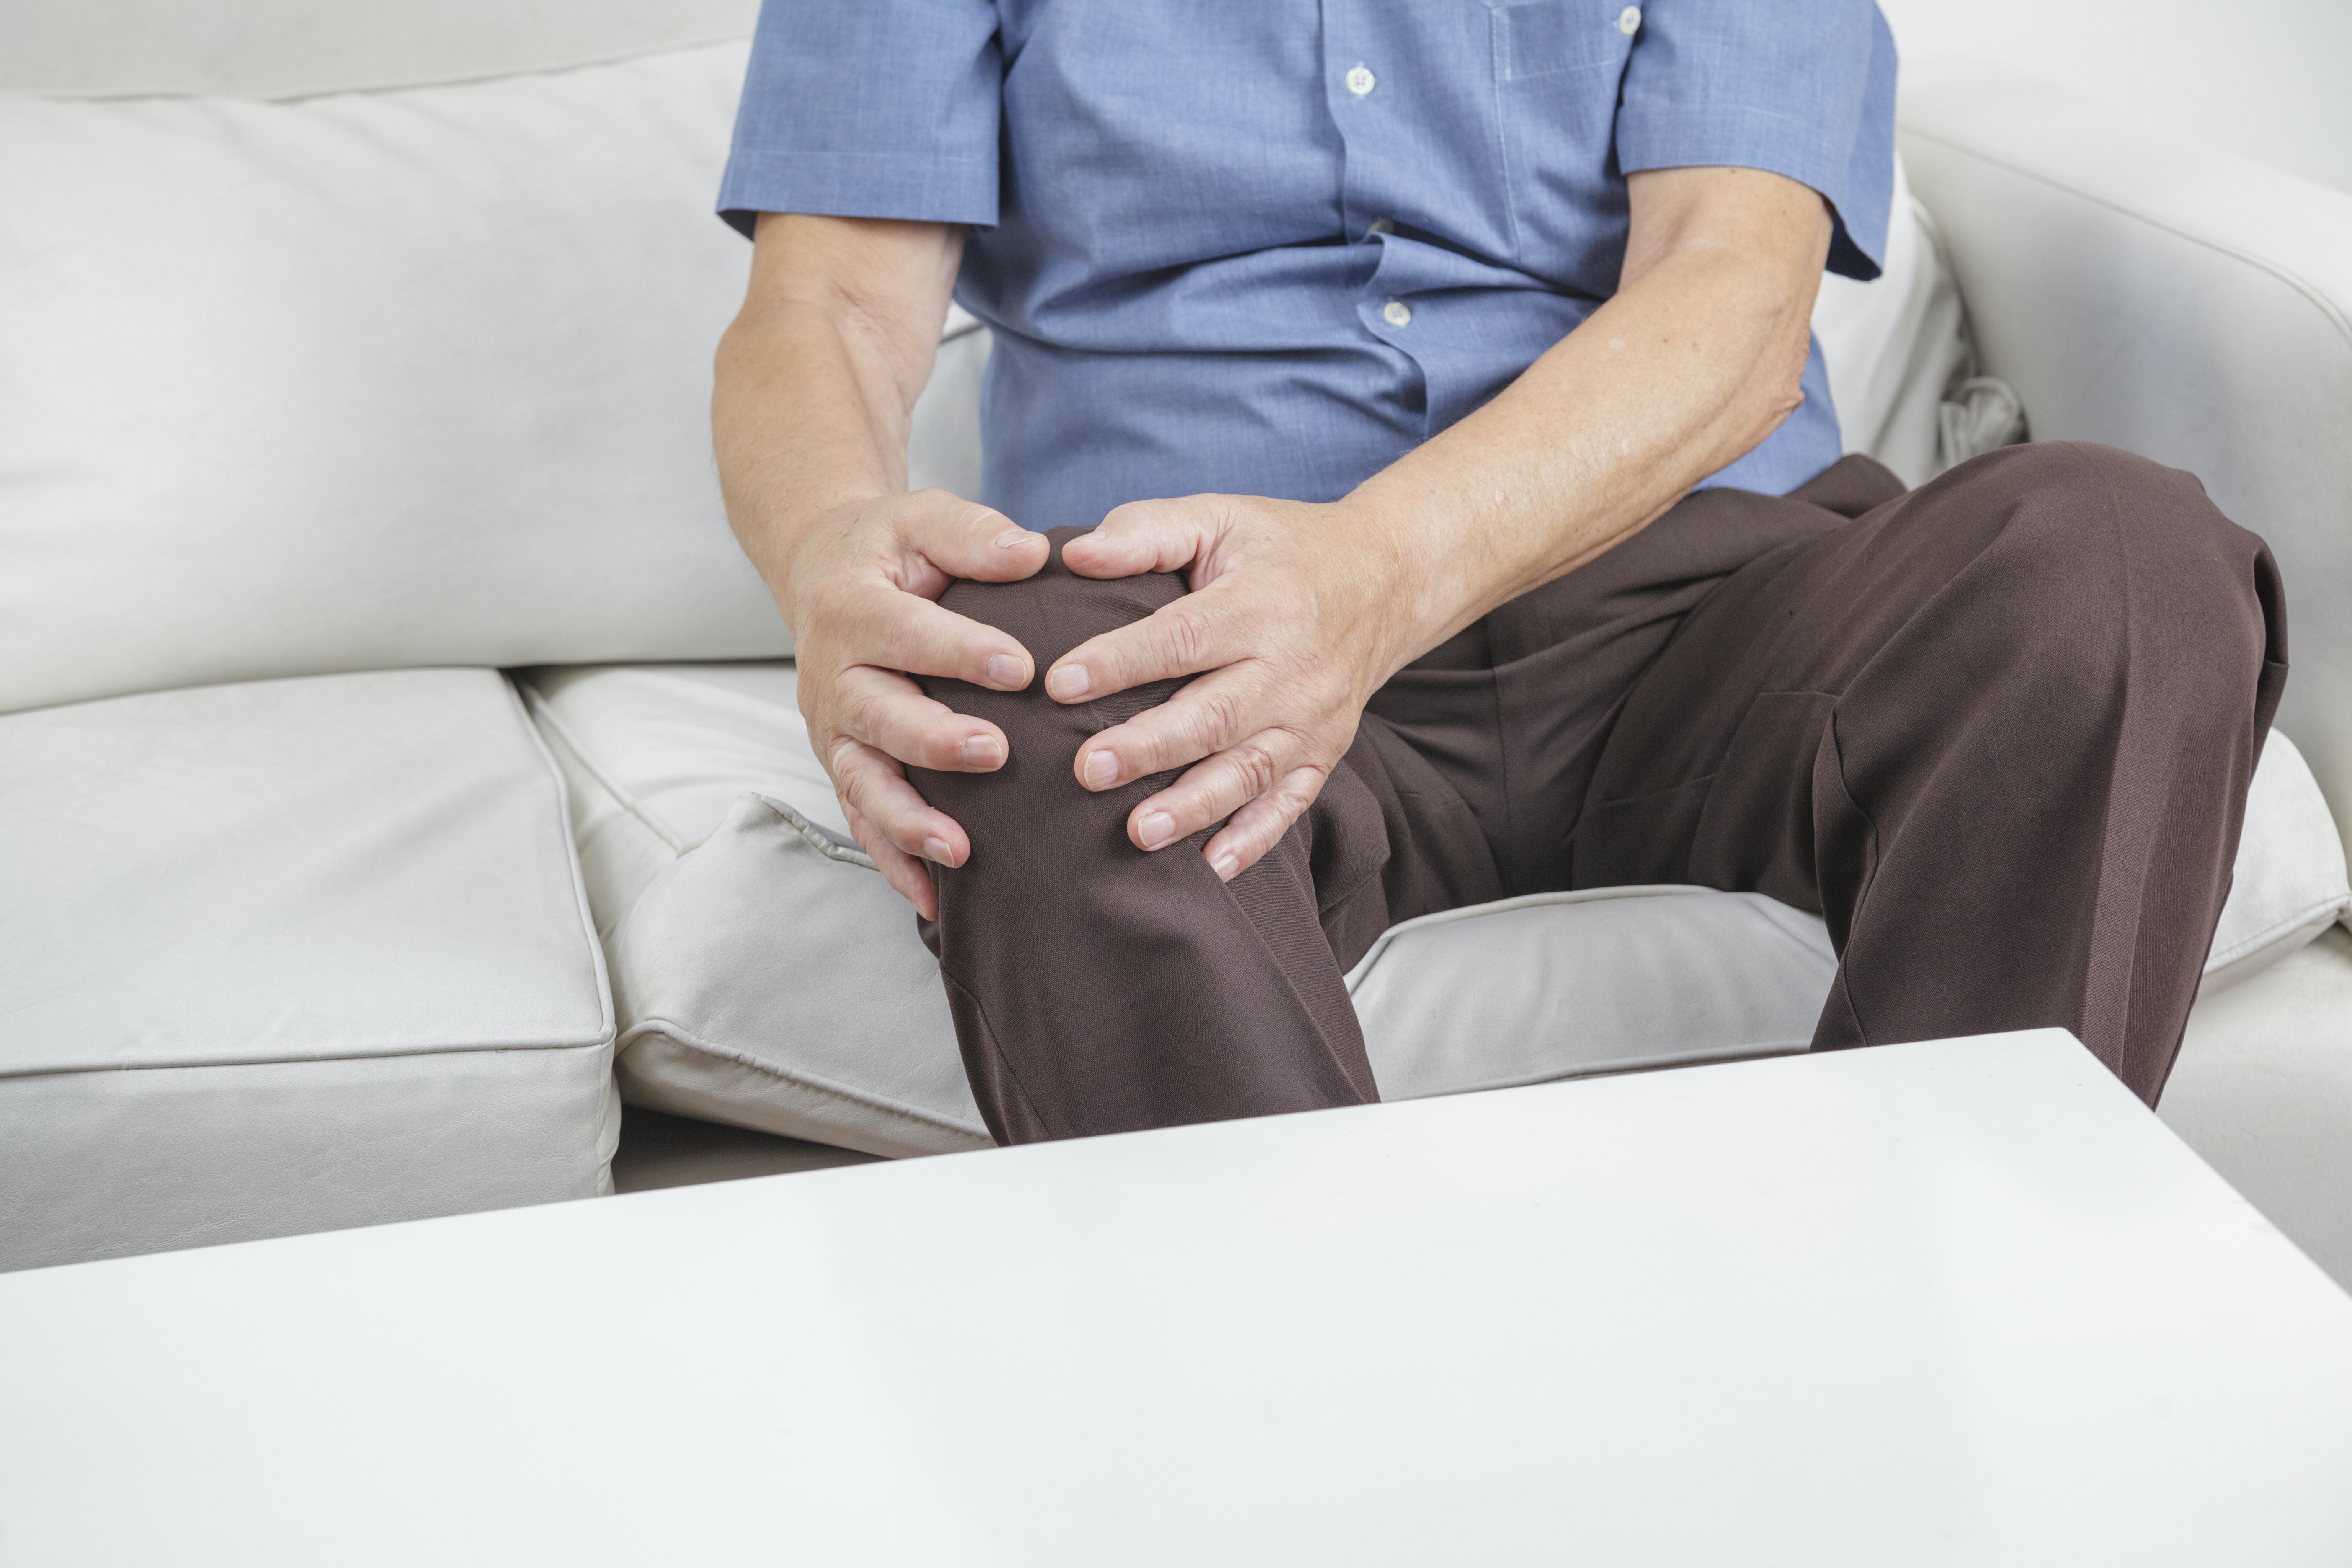 An image depicting a person suffering from knee instability symptoms